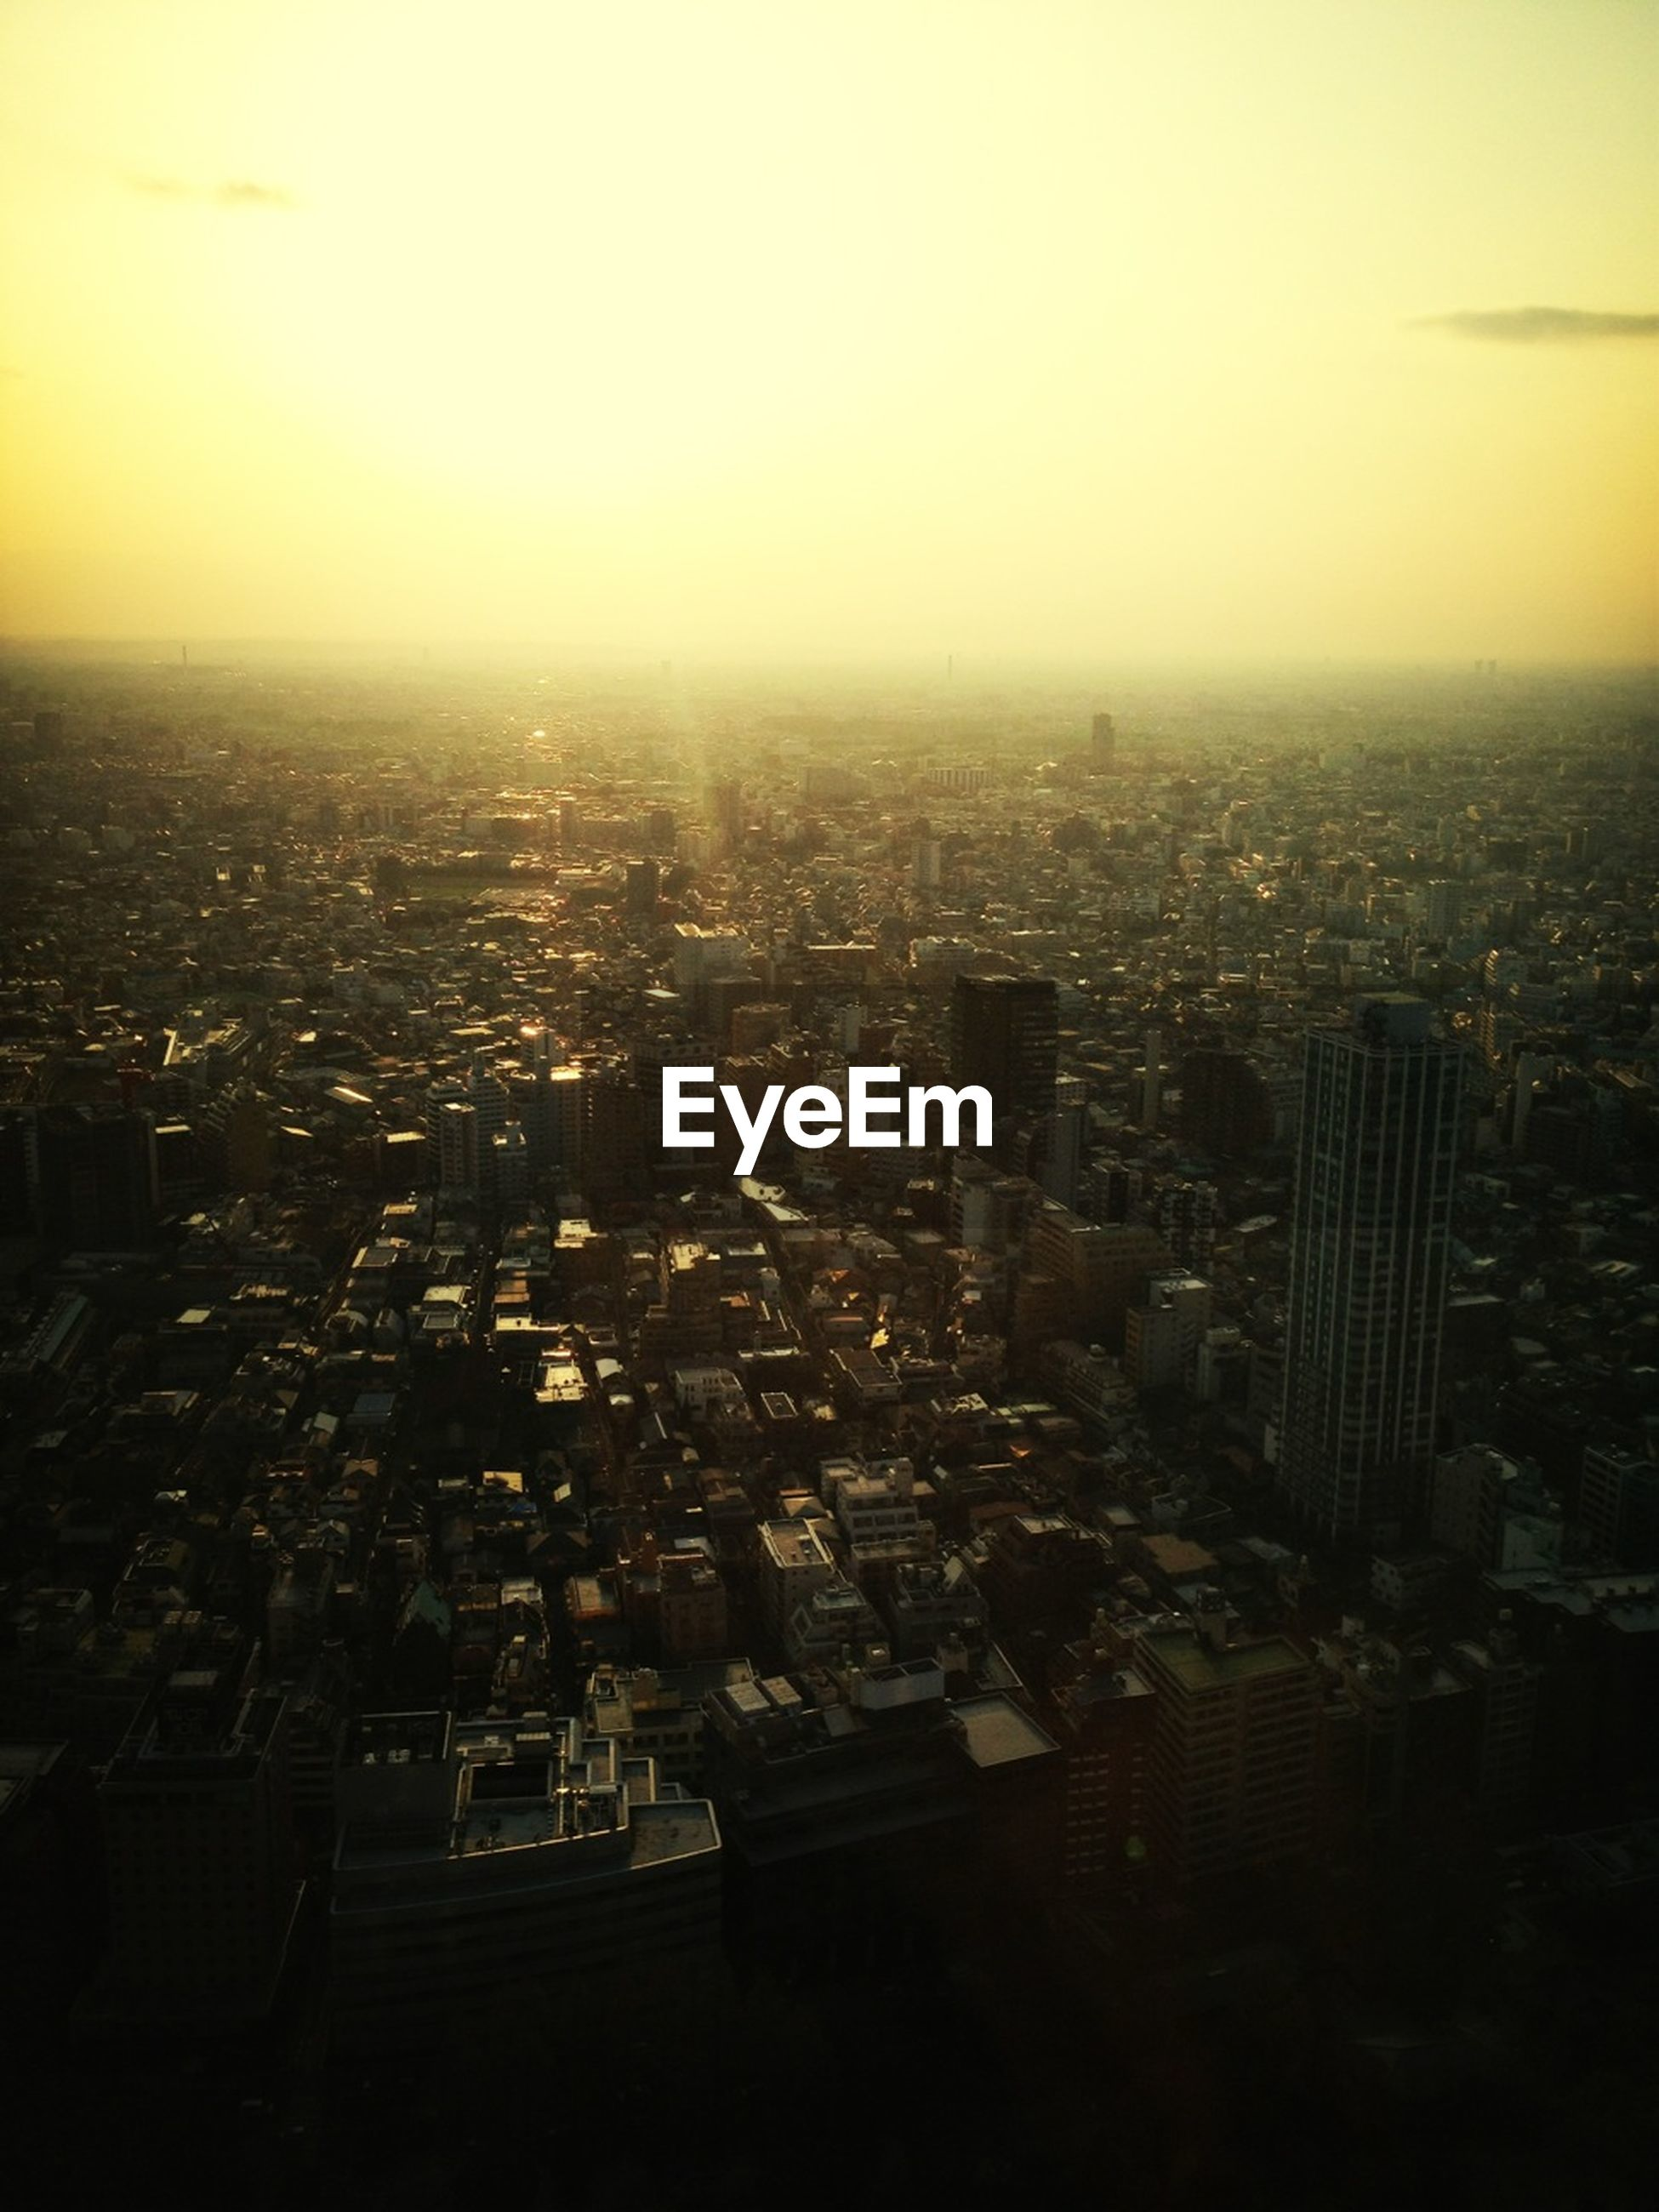 cityscape, city, sunset, building exterior, architecture, built structure, crowded, high angle view, aerial view, skyscraper, sky, orange color, clear sky, modern, copy space, residential district, no people, residential building, city life, outdoors